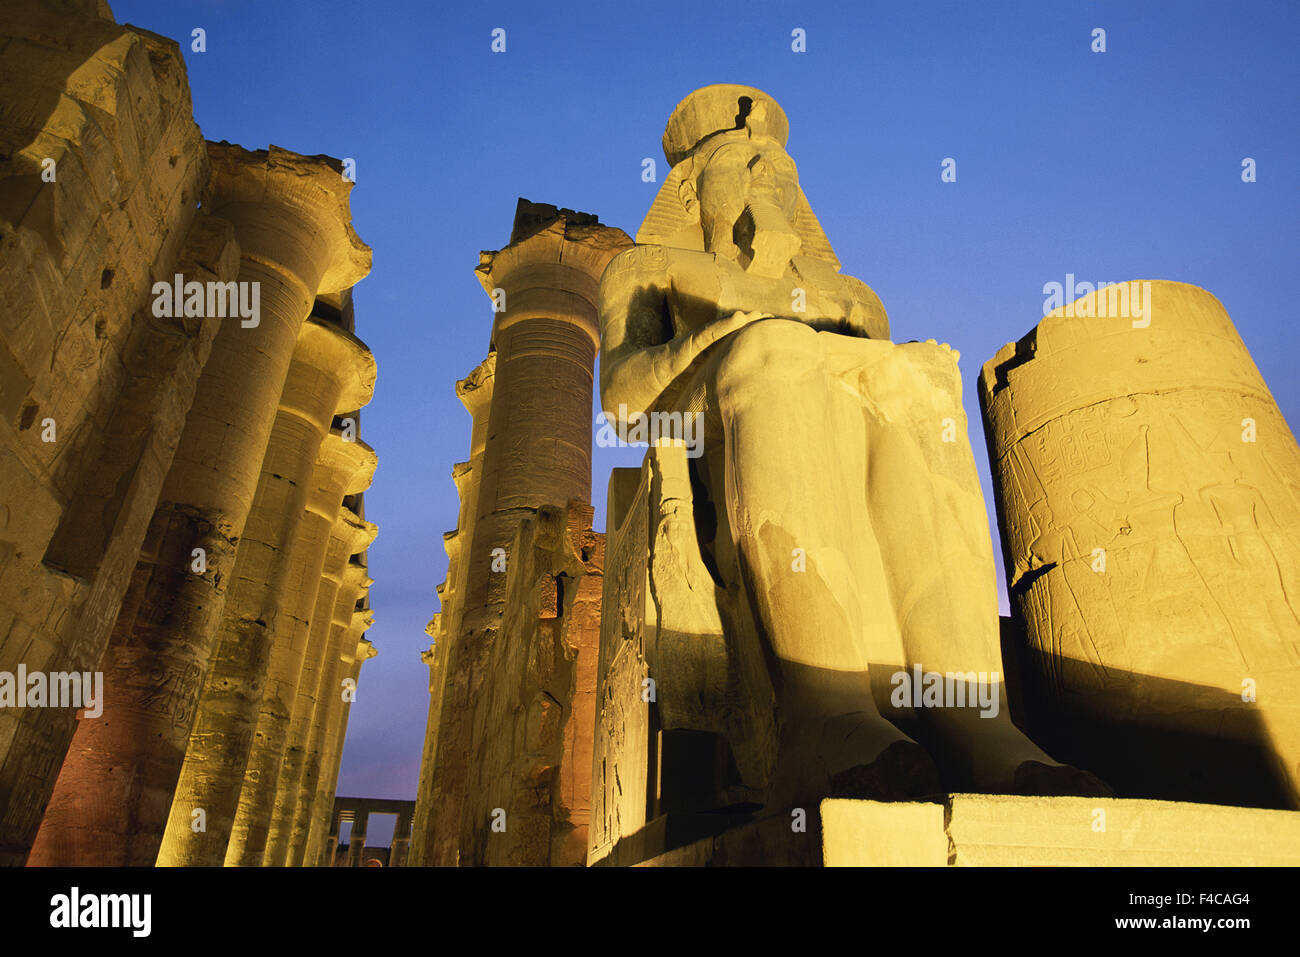 Egypt, Upper Egypt, Luxor, Low angle view of Luxor temple at dusk. (Large format sizes available) - Stock Image